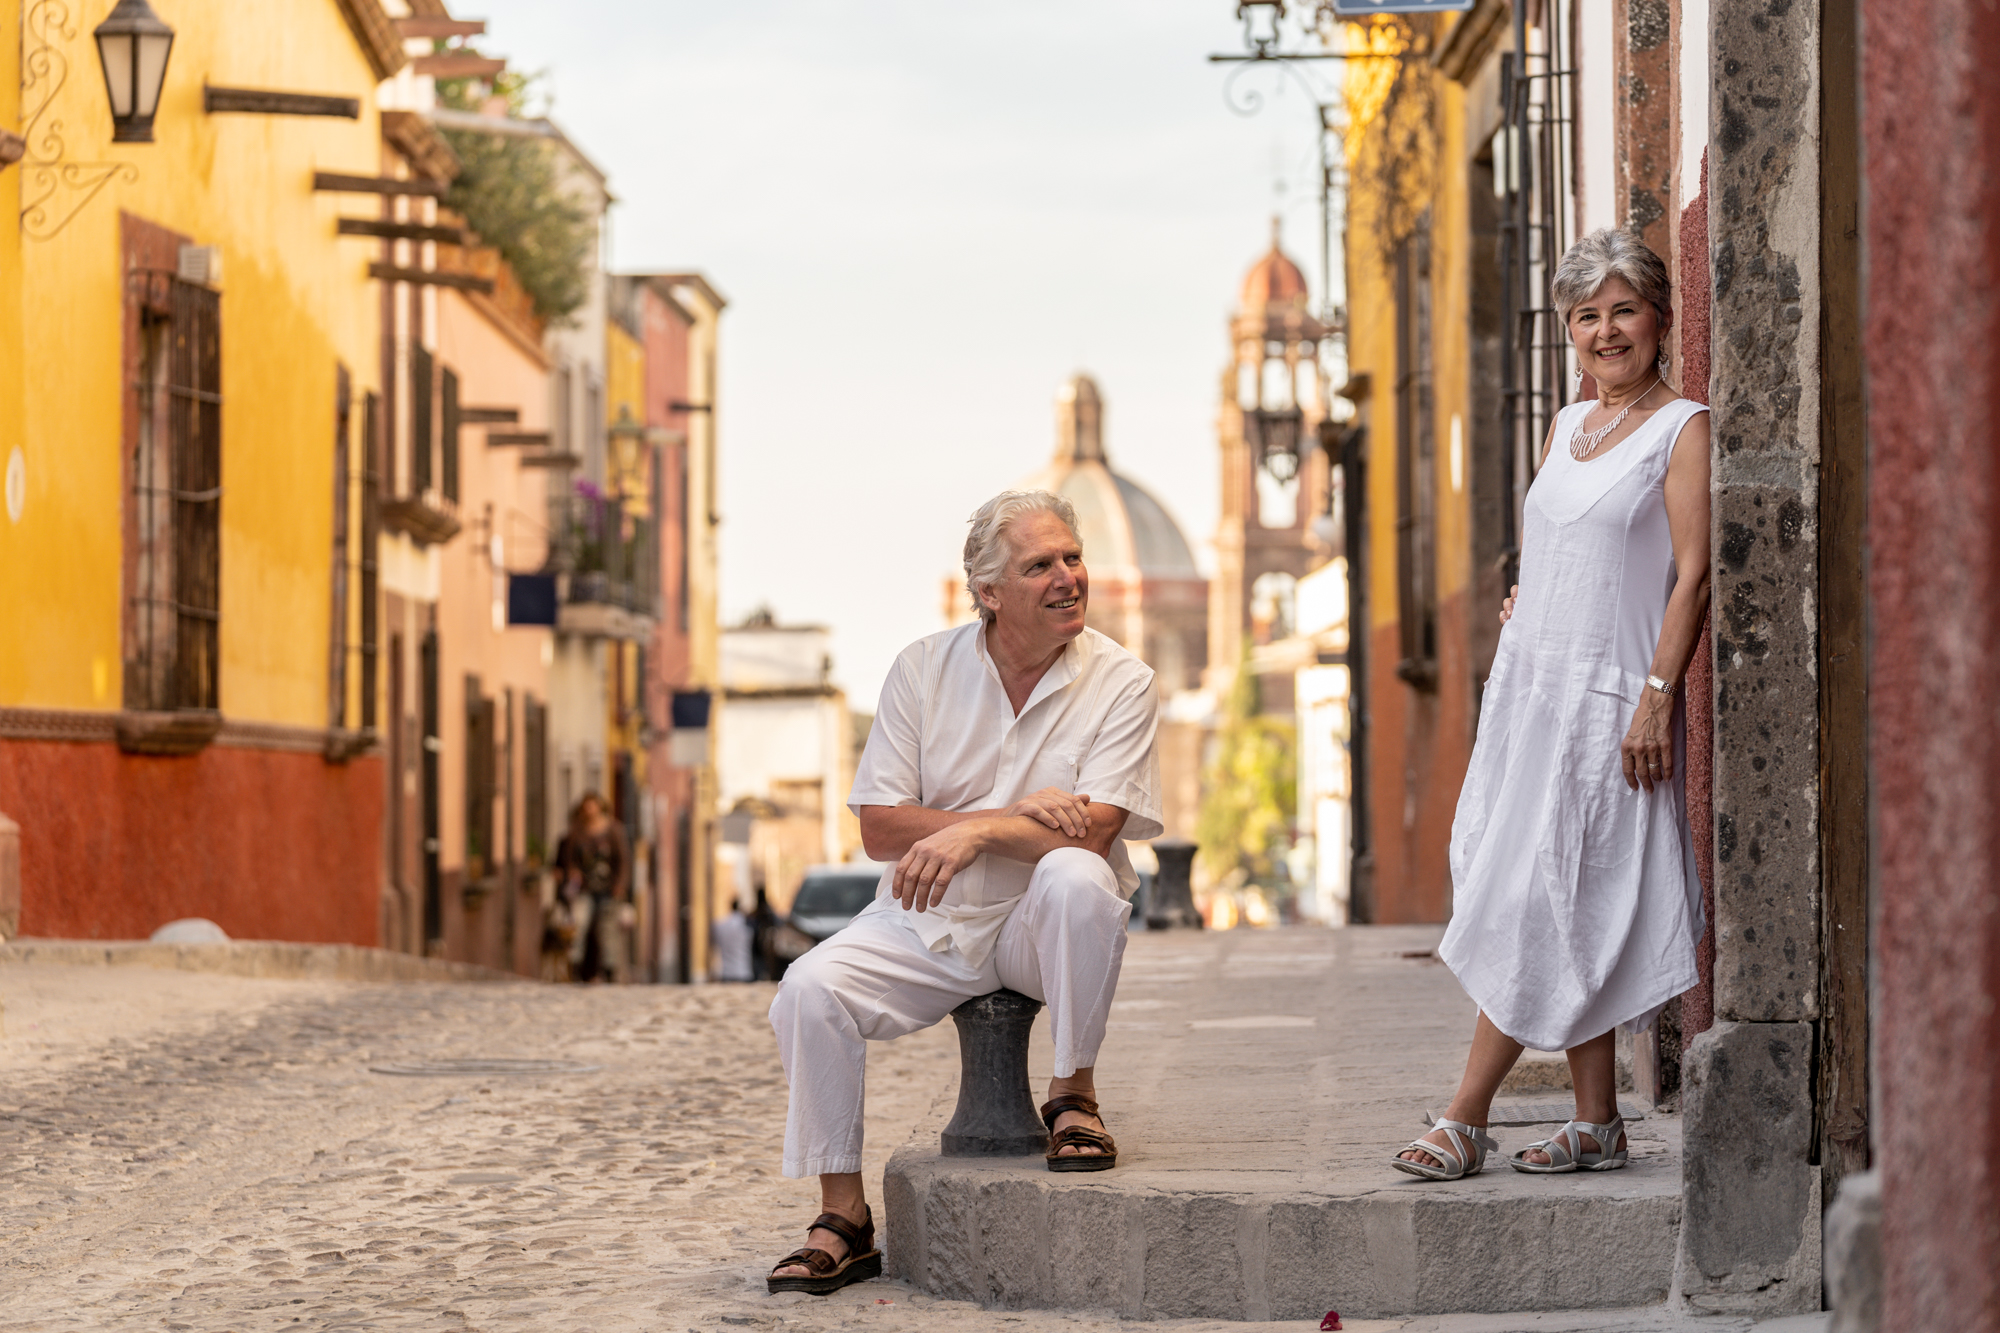 Photoshoot session in San Miguel de Allende with Suzanne and Leo-38.jpg